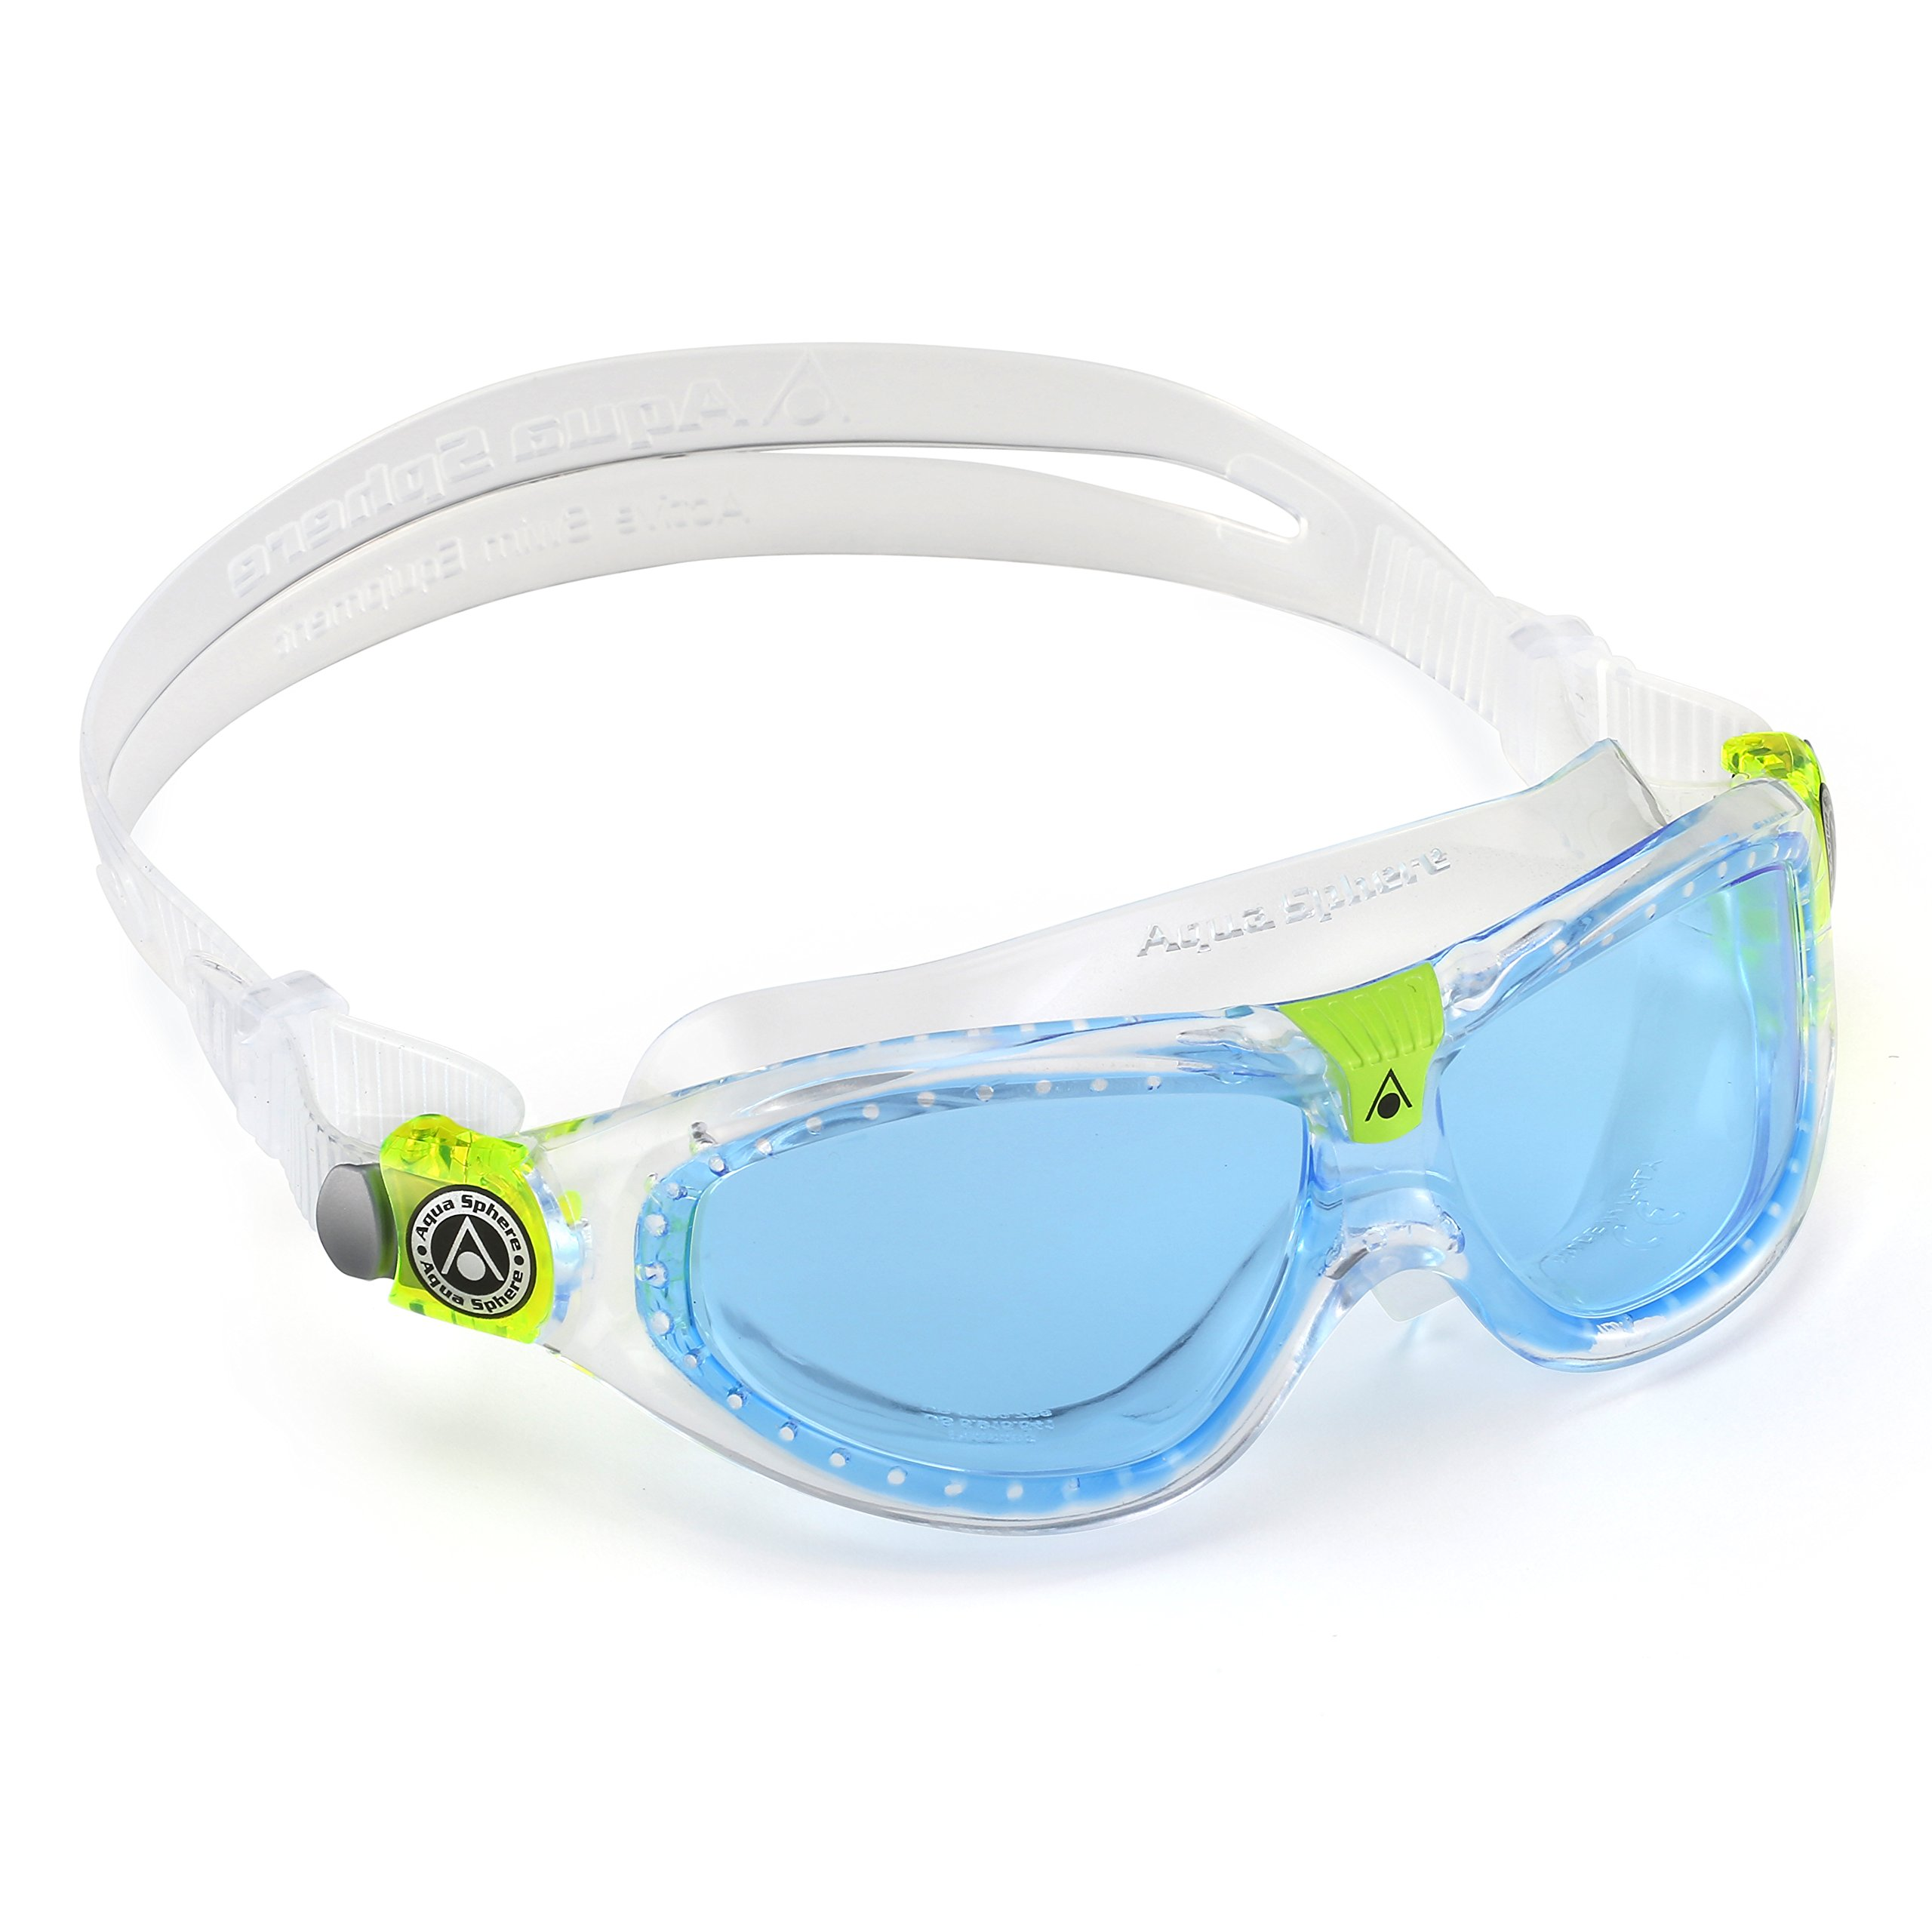 Aqua Sphere - Gafas de natación junior seal 2, transparente (Blue lenses) product